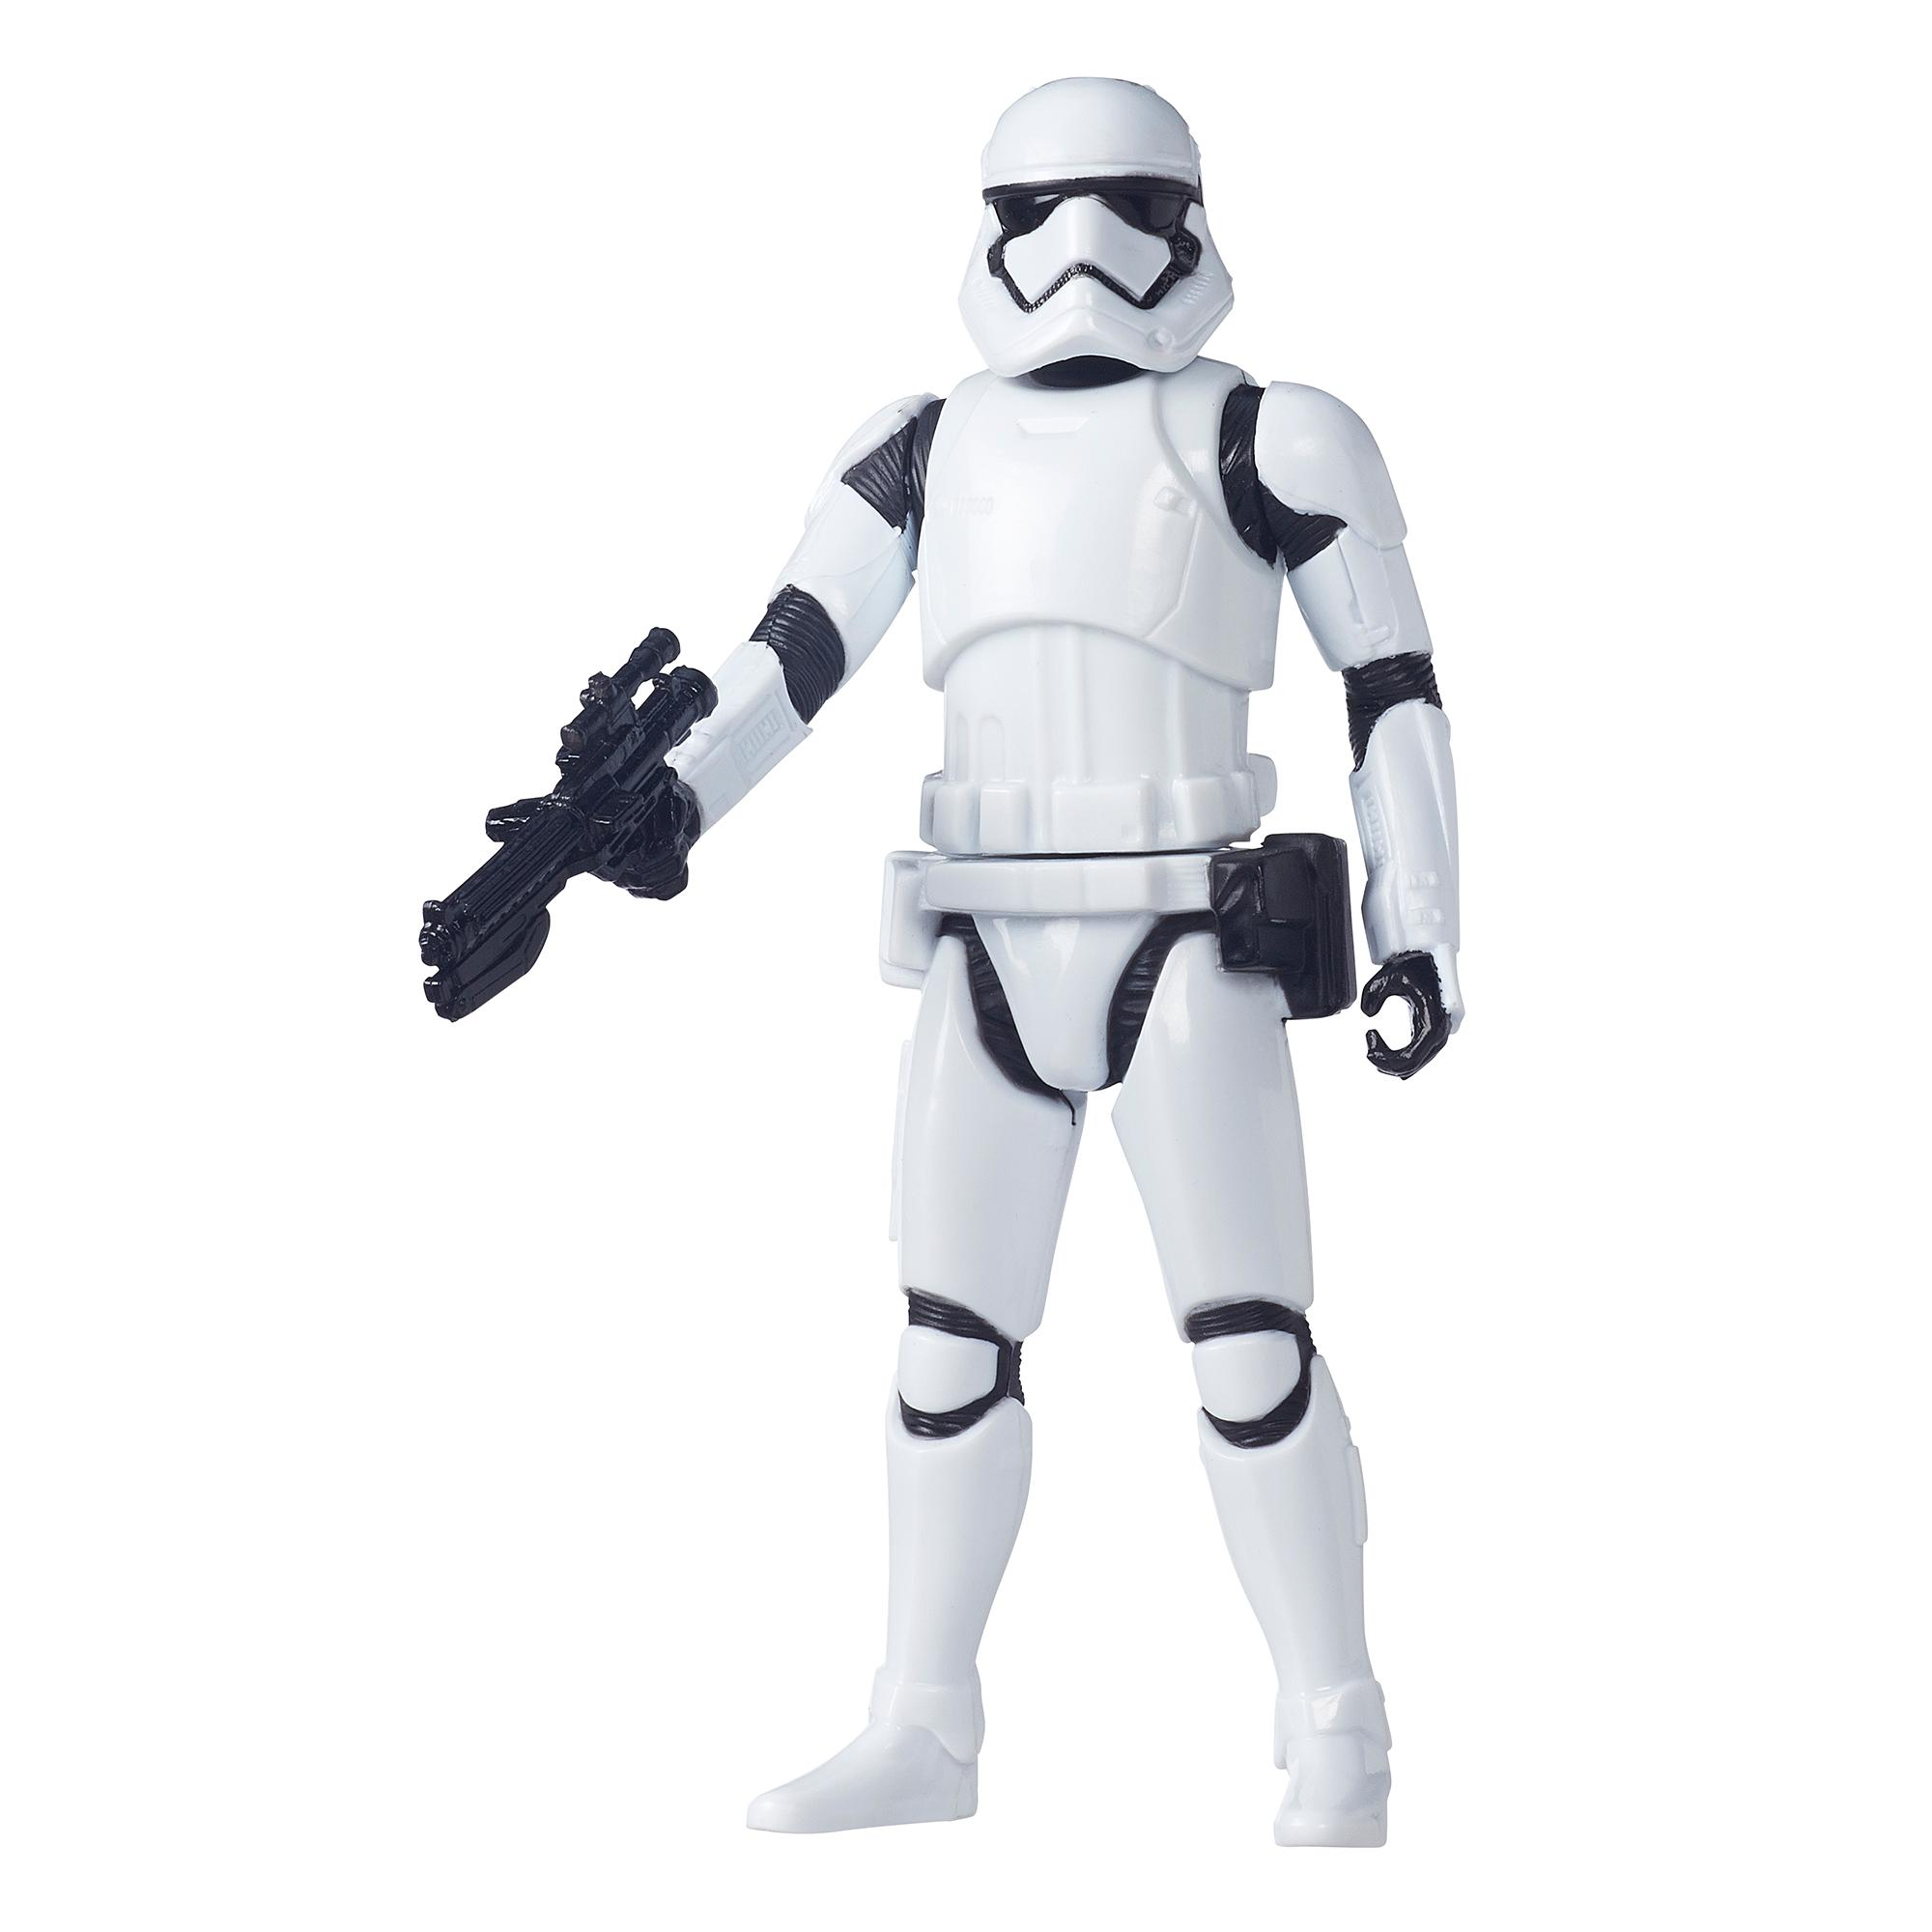 Star Wars The Force Awakens Stormtrooper de la Primera Orden de 15 cm (6 in)